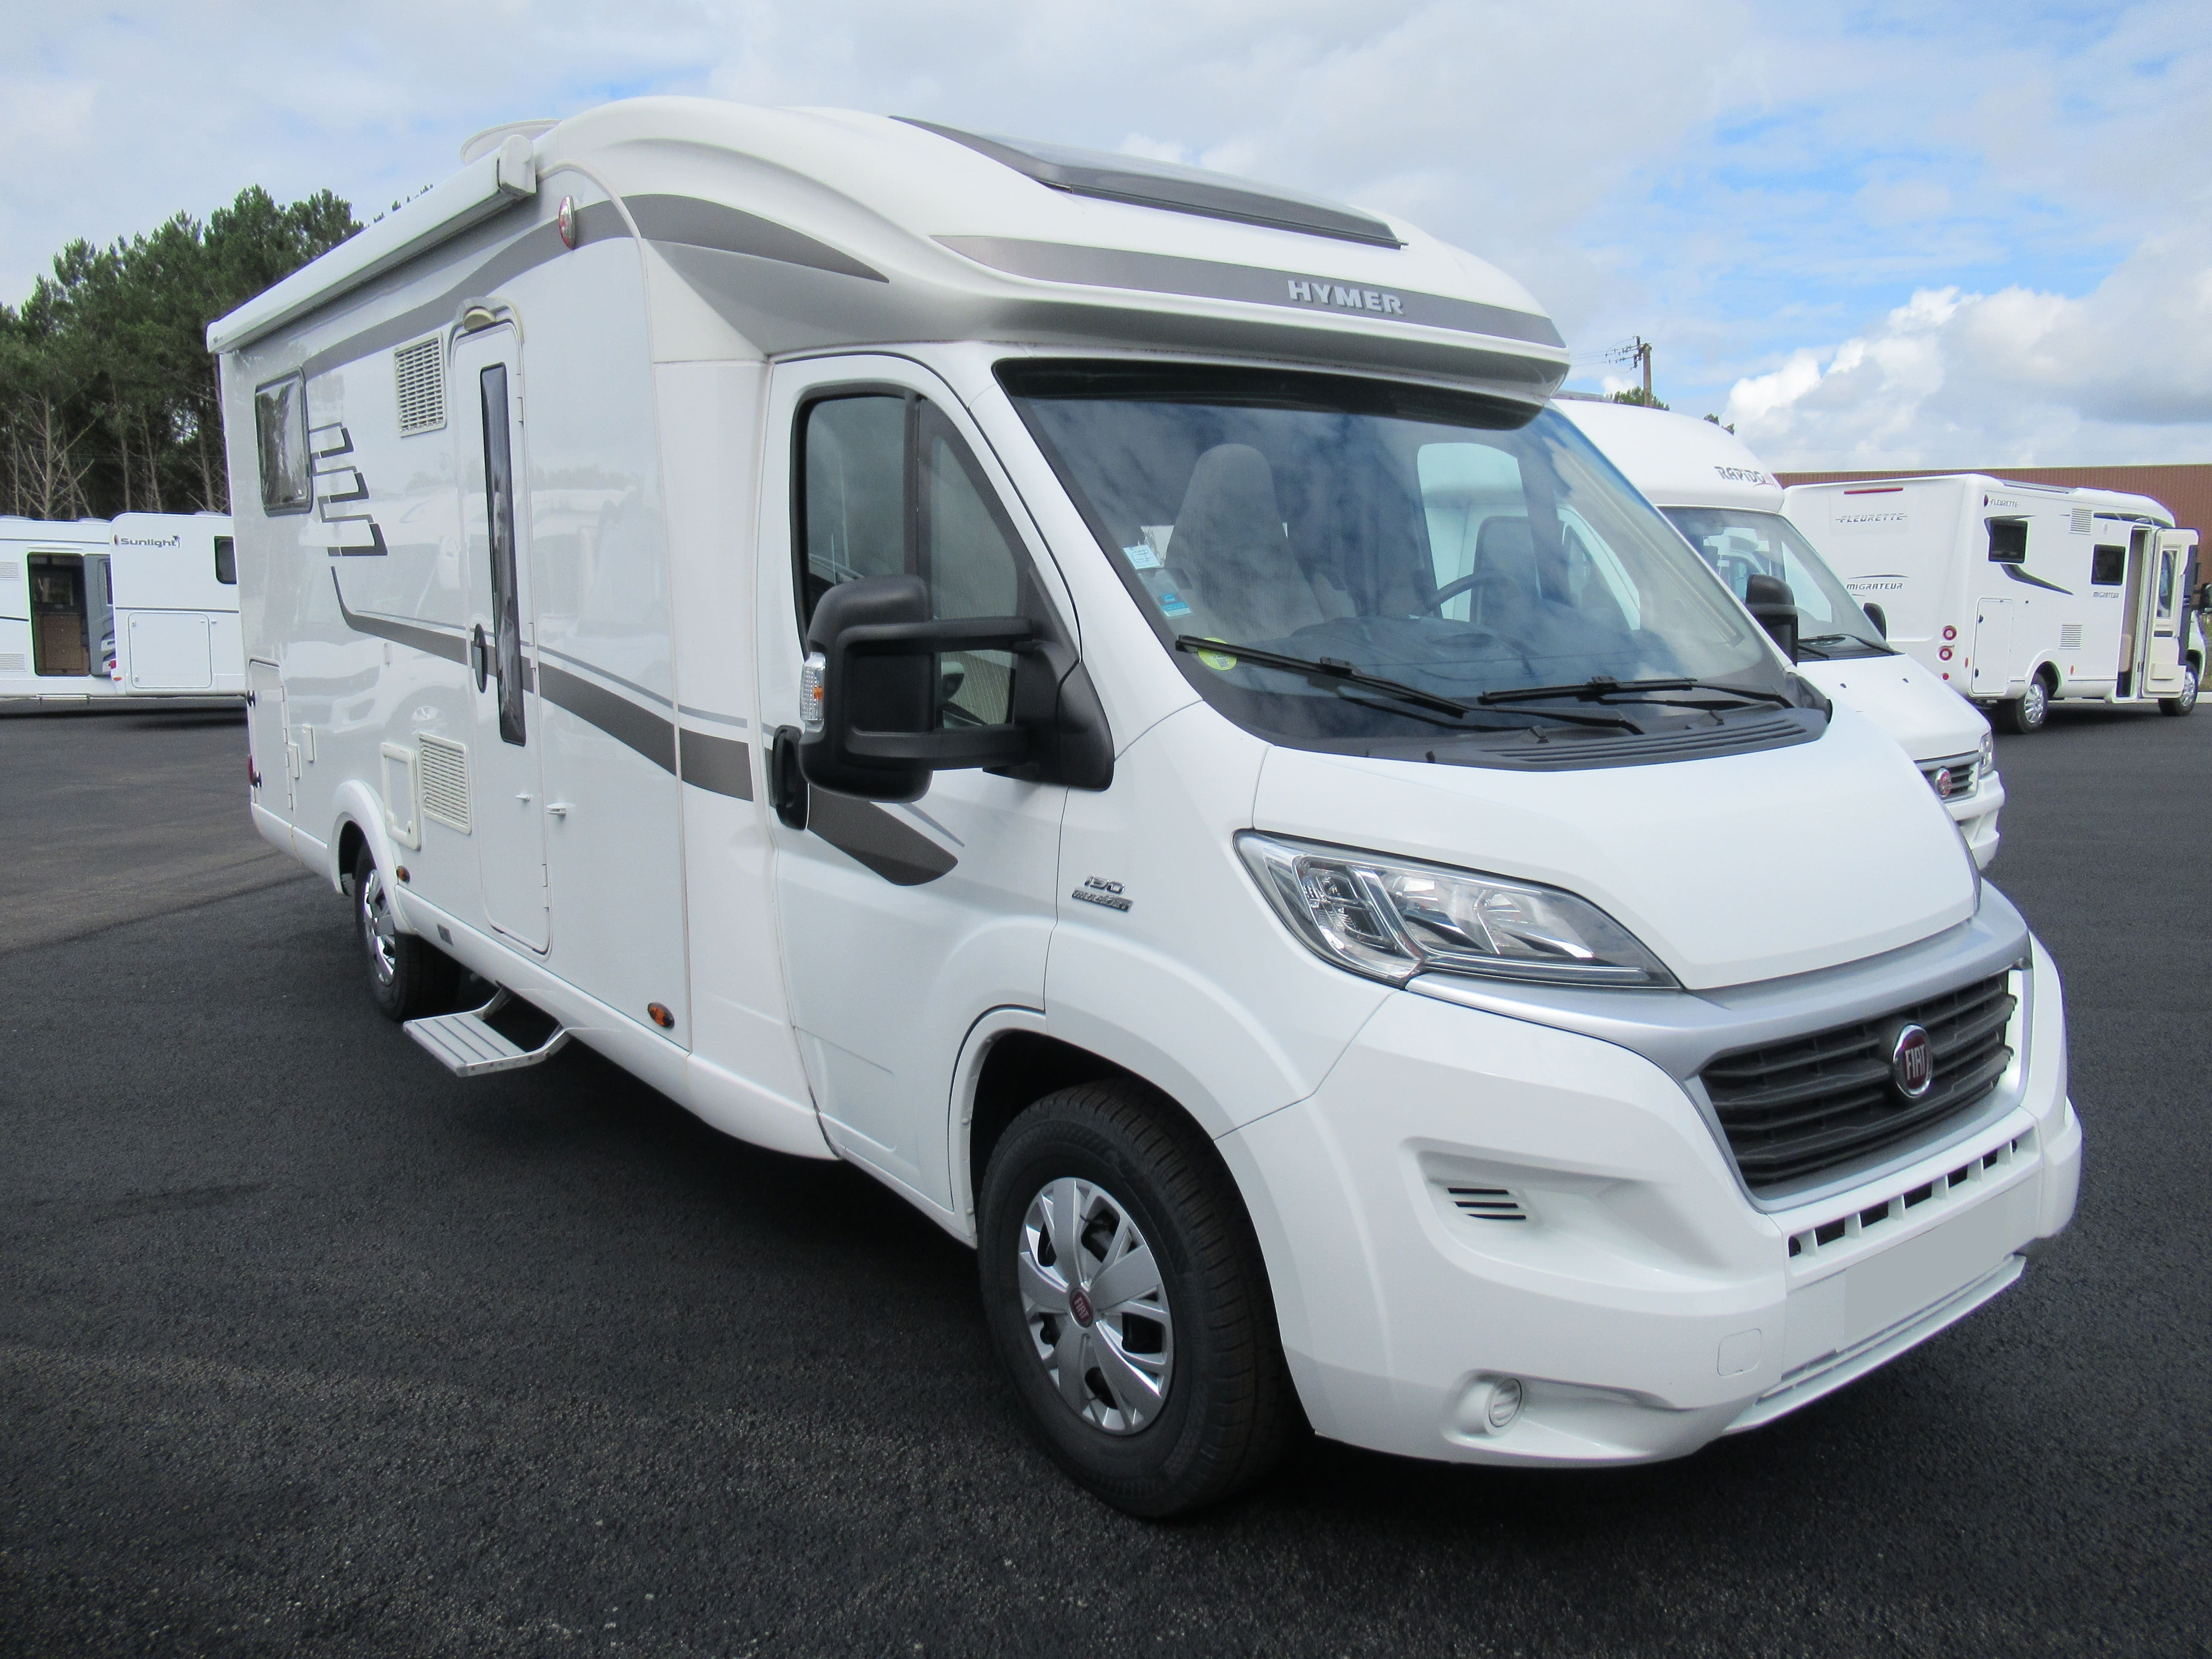 Camping-car HYMER T 698 CL